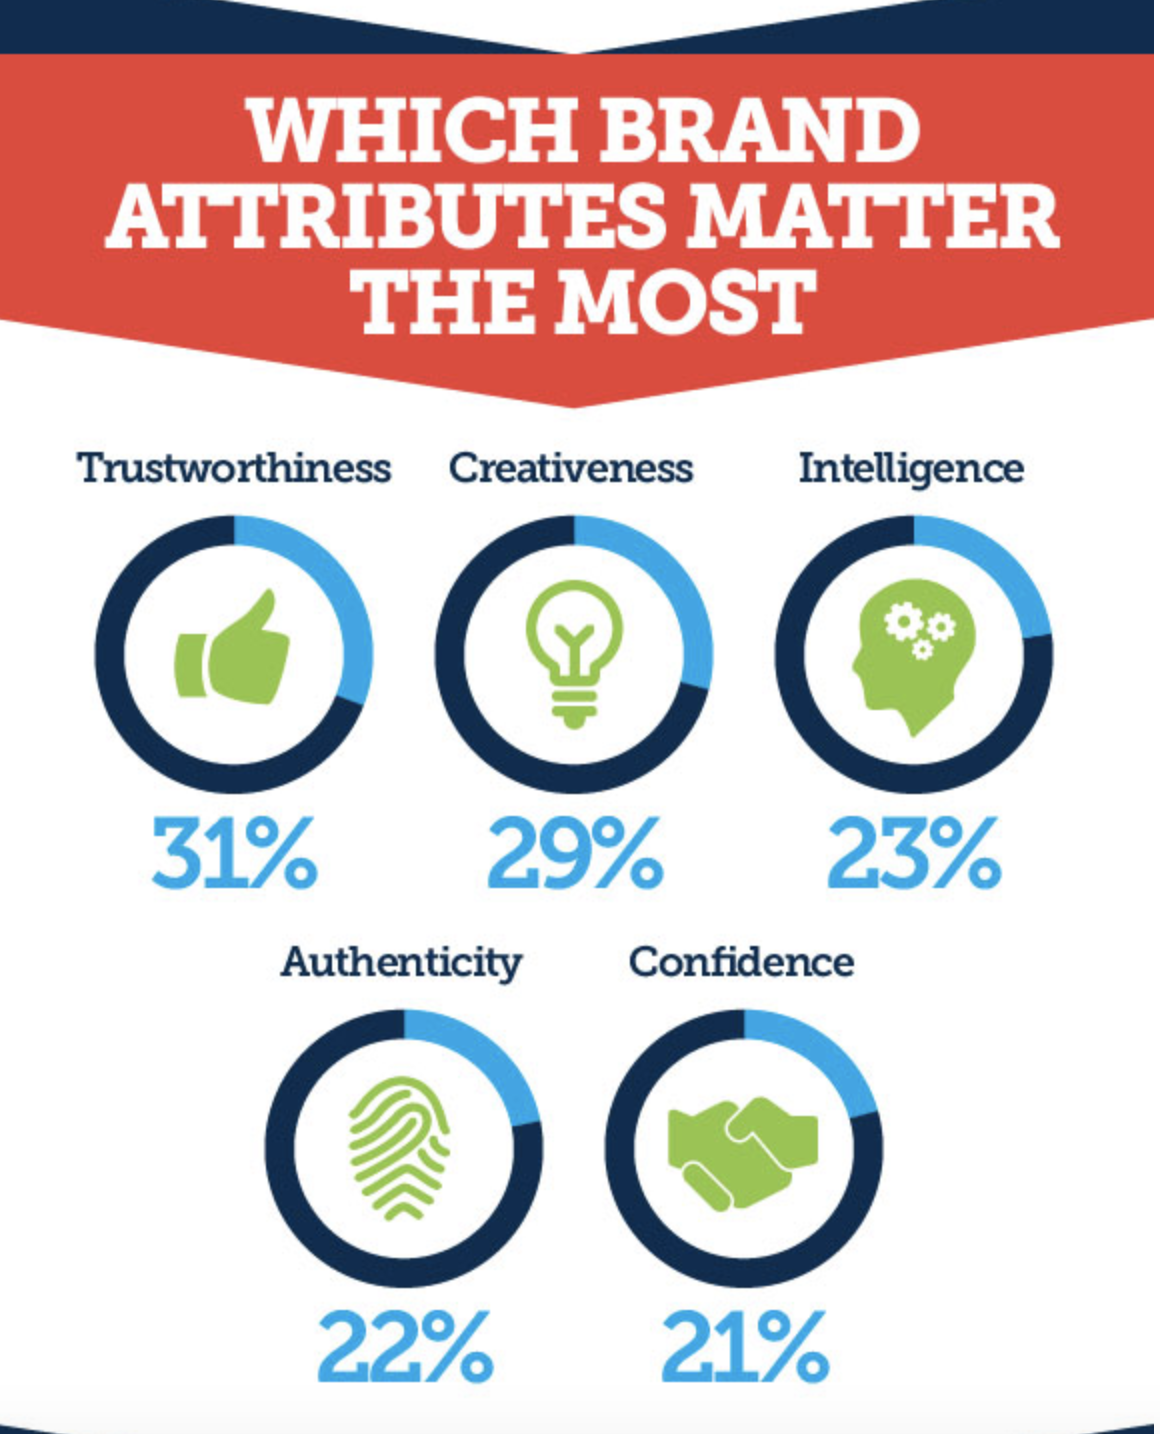 which brand attributes matter the most